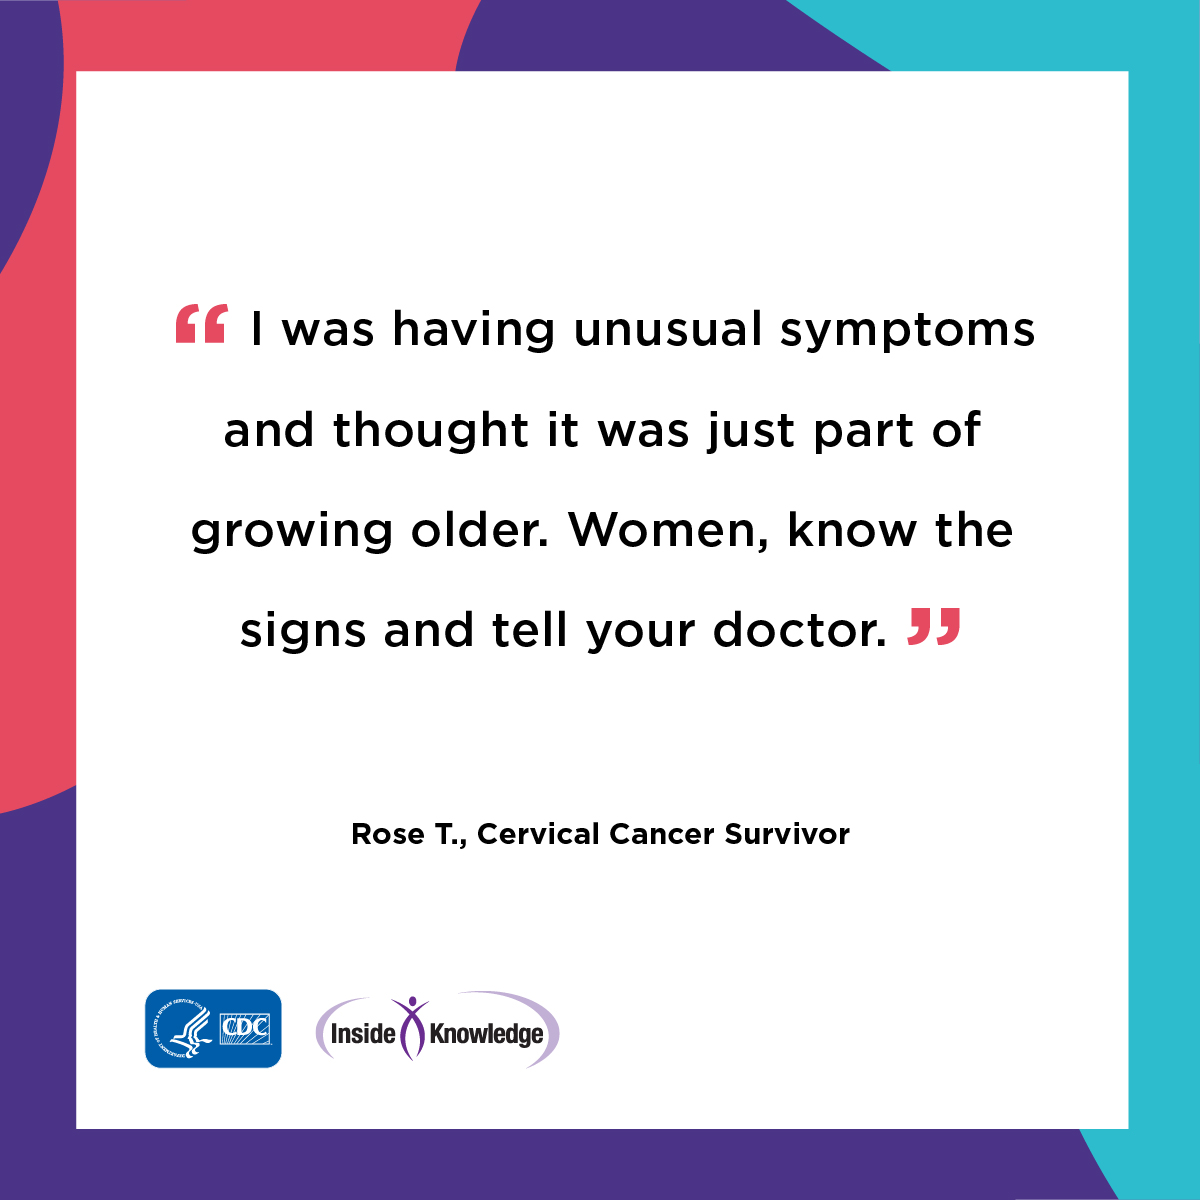 I was having unusual symptoms and thought it was just part of growing older. Women, know the signs and tell your doctor. Rose T., Cervical Cancer Survivor